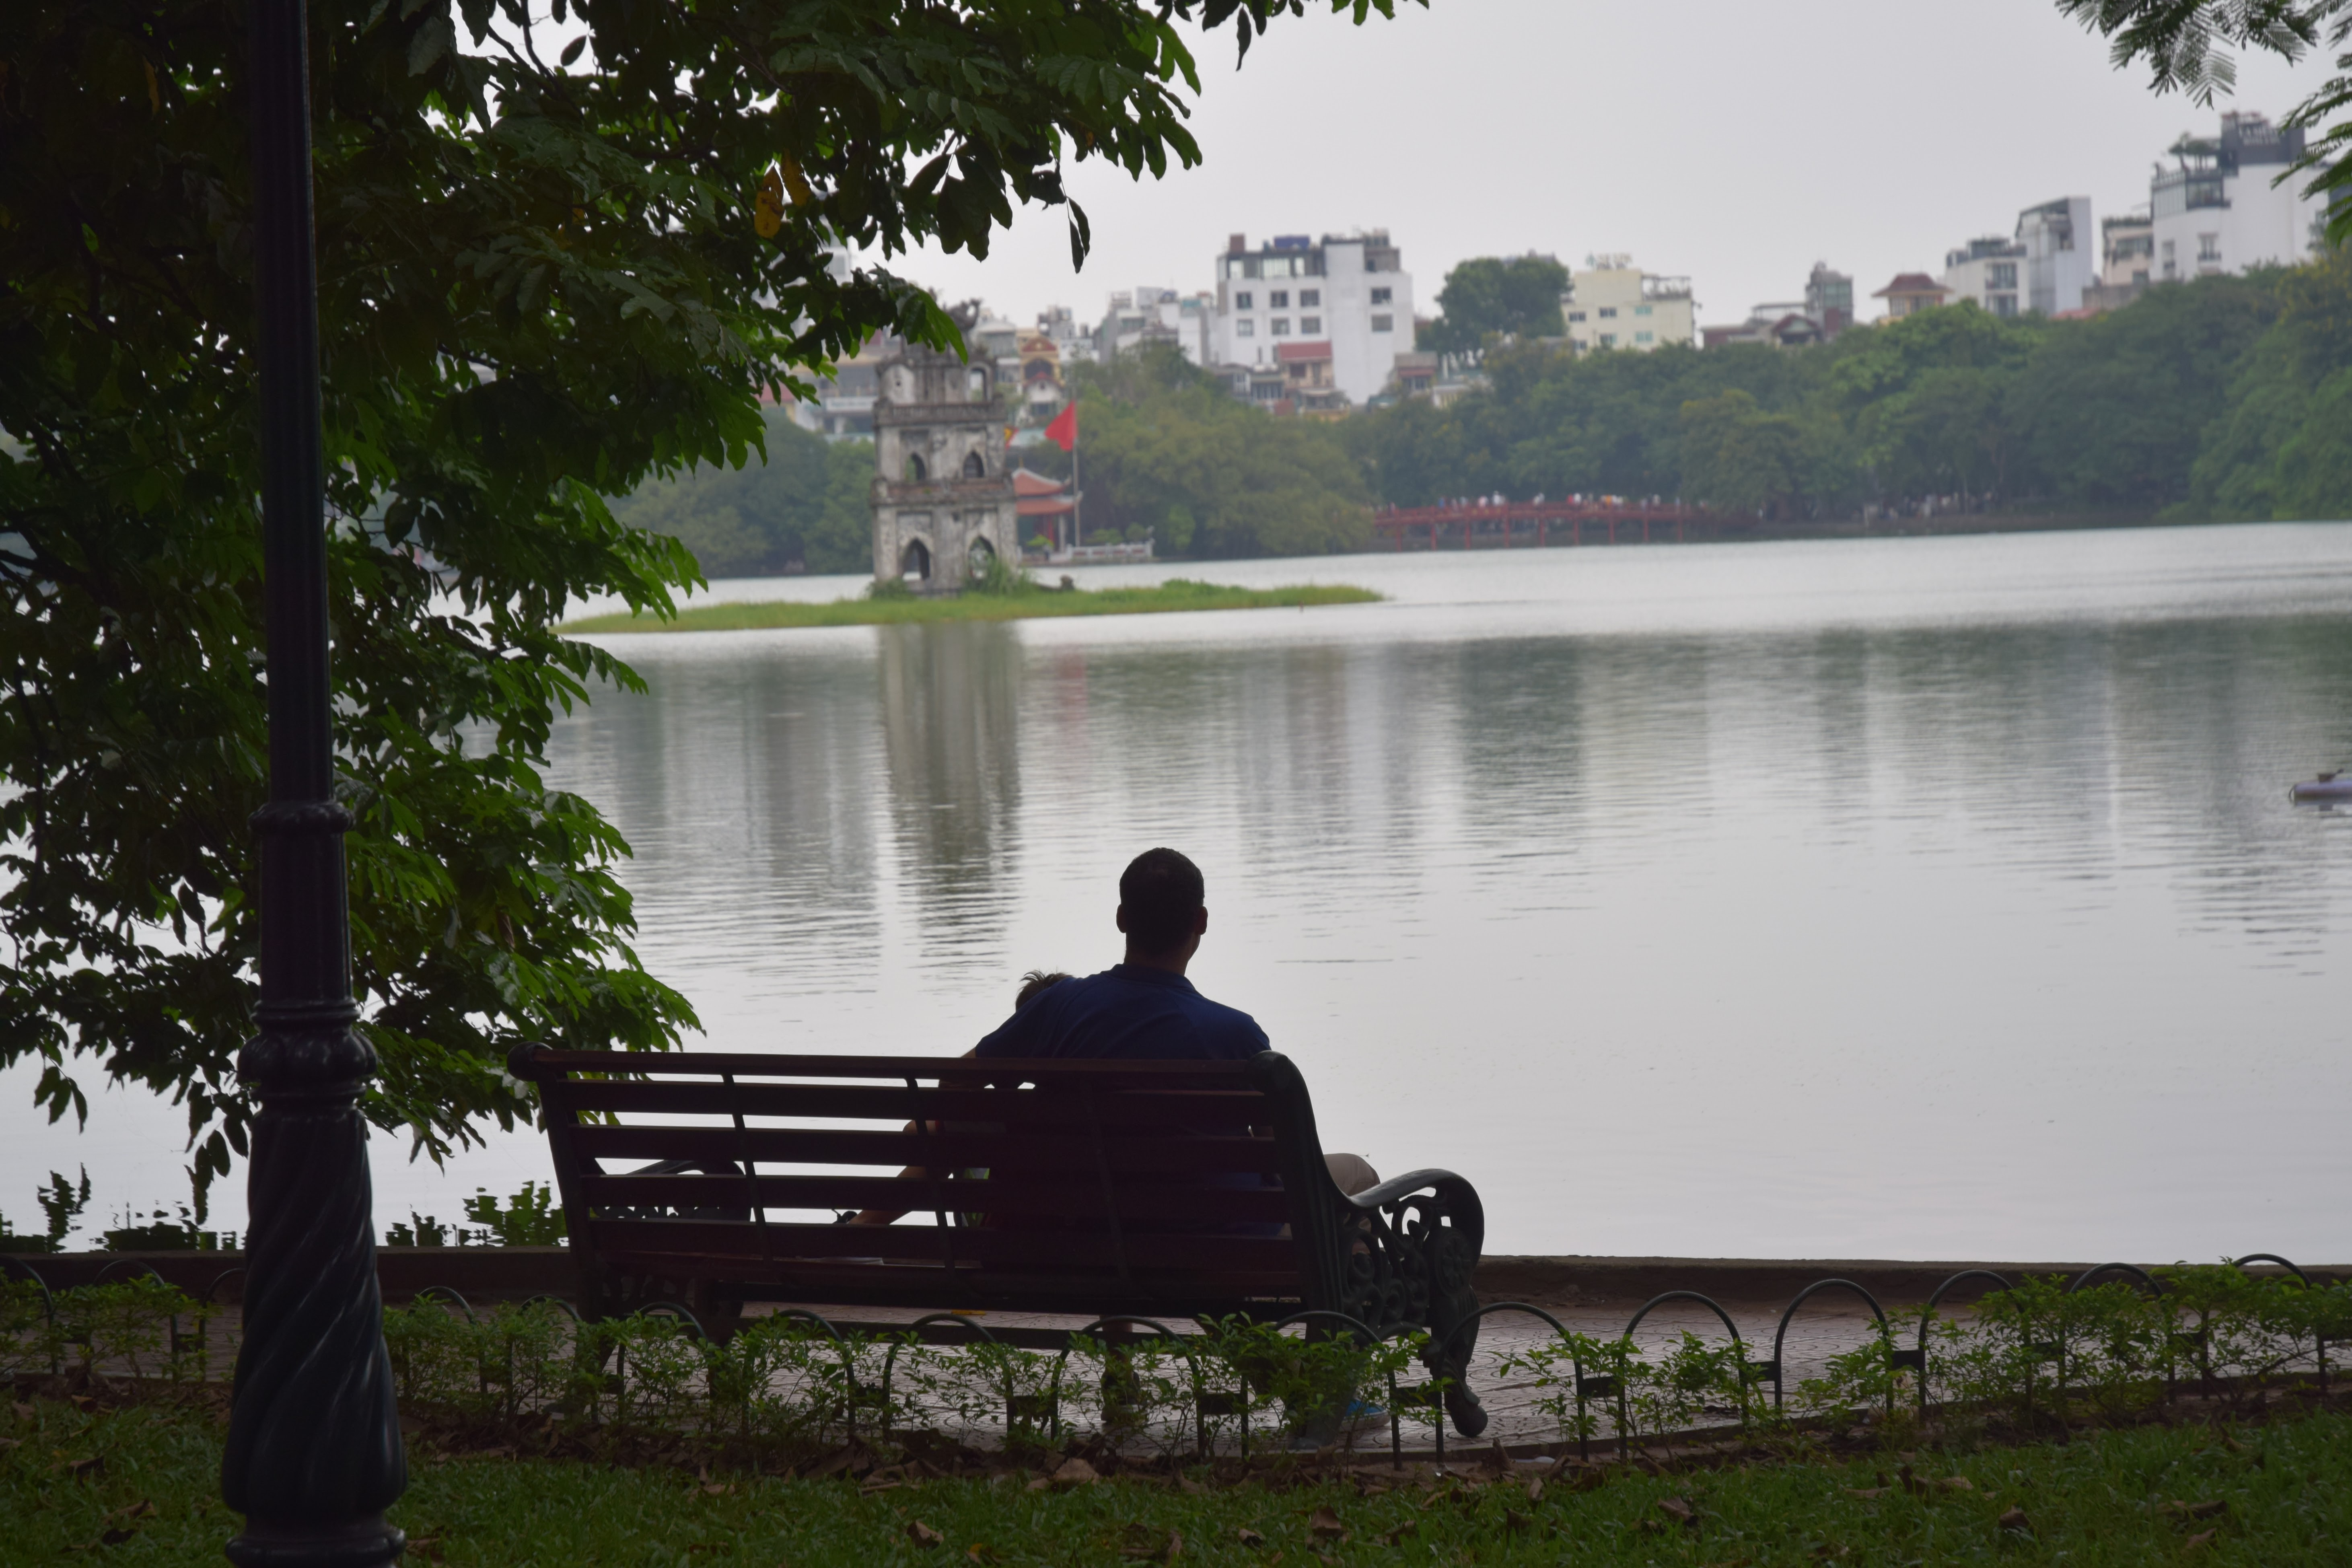 Kyle Nunas and his son at Hoan Kiem Lake in 2018 in a photo provided to Tuoi Tre News. 'I took a photo of a stranger from nearly this exact spot 20 years ago, Nunas wrote a caption for this photo.